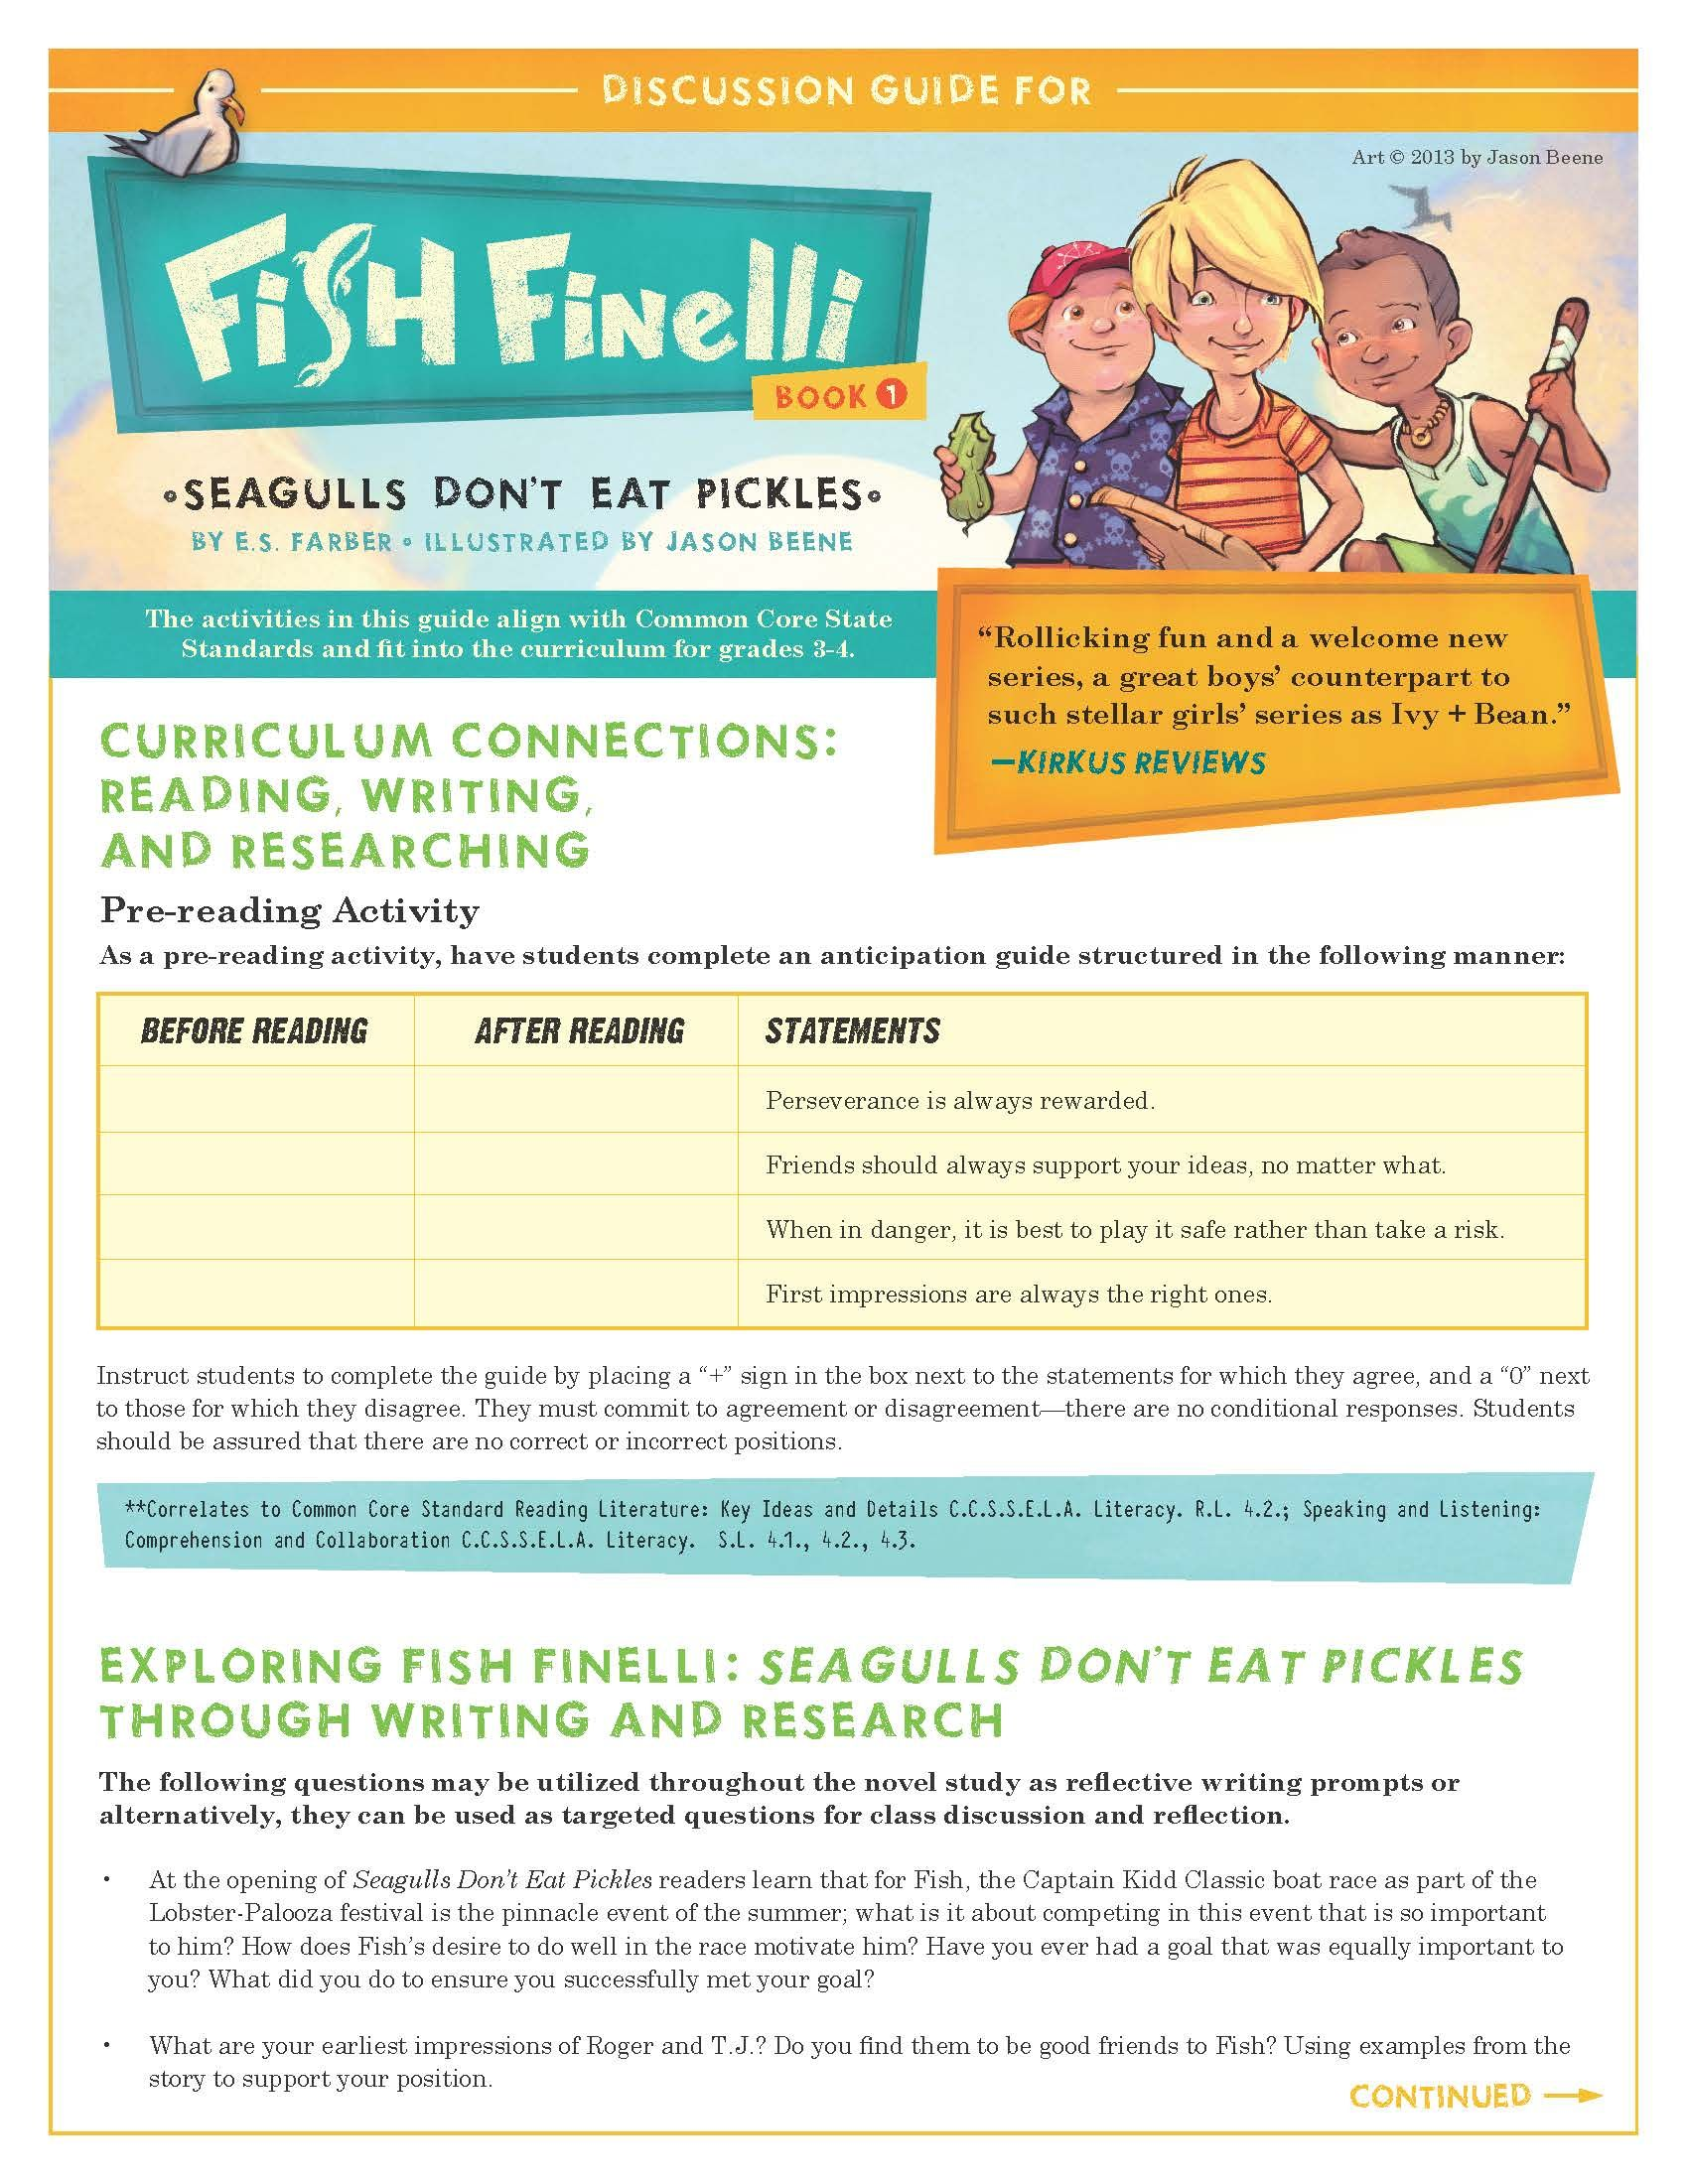 Discussion Guide For Fish Finelli That Is Aligned To Common Core